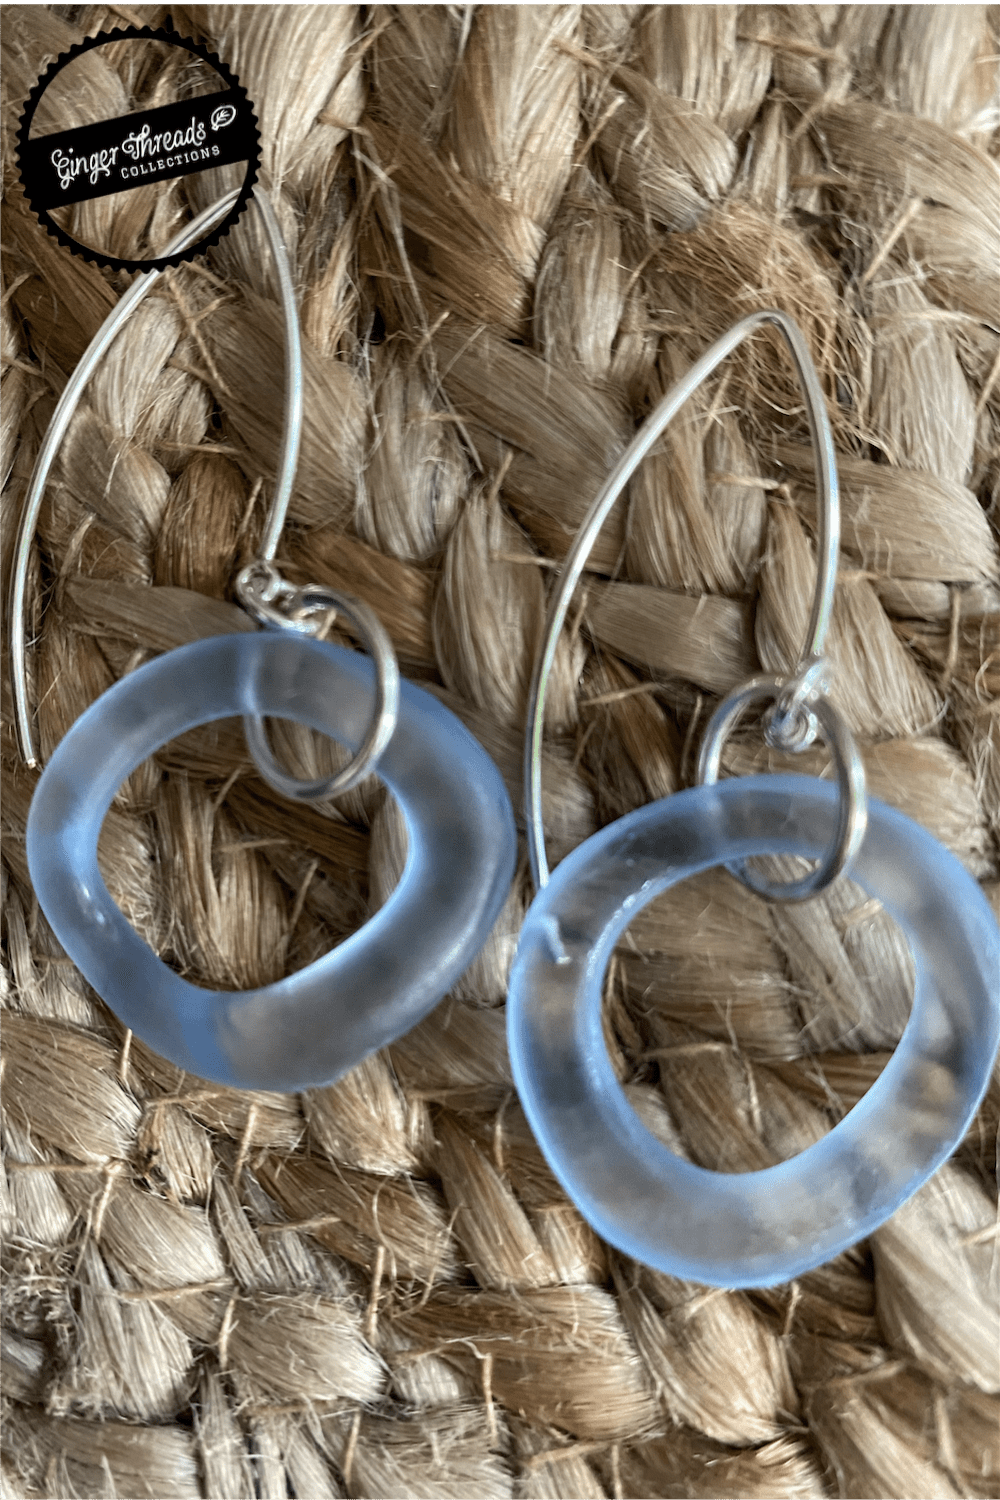 Ginger Threads Collections earrings Recycled Glass Wave Earrings